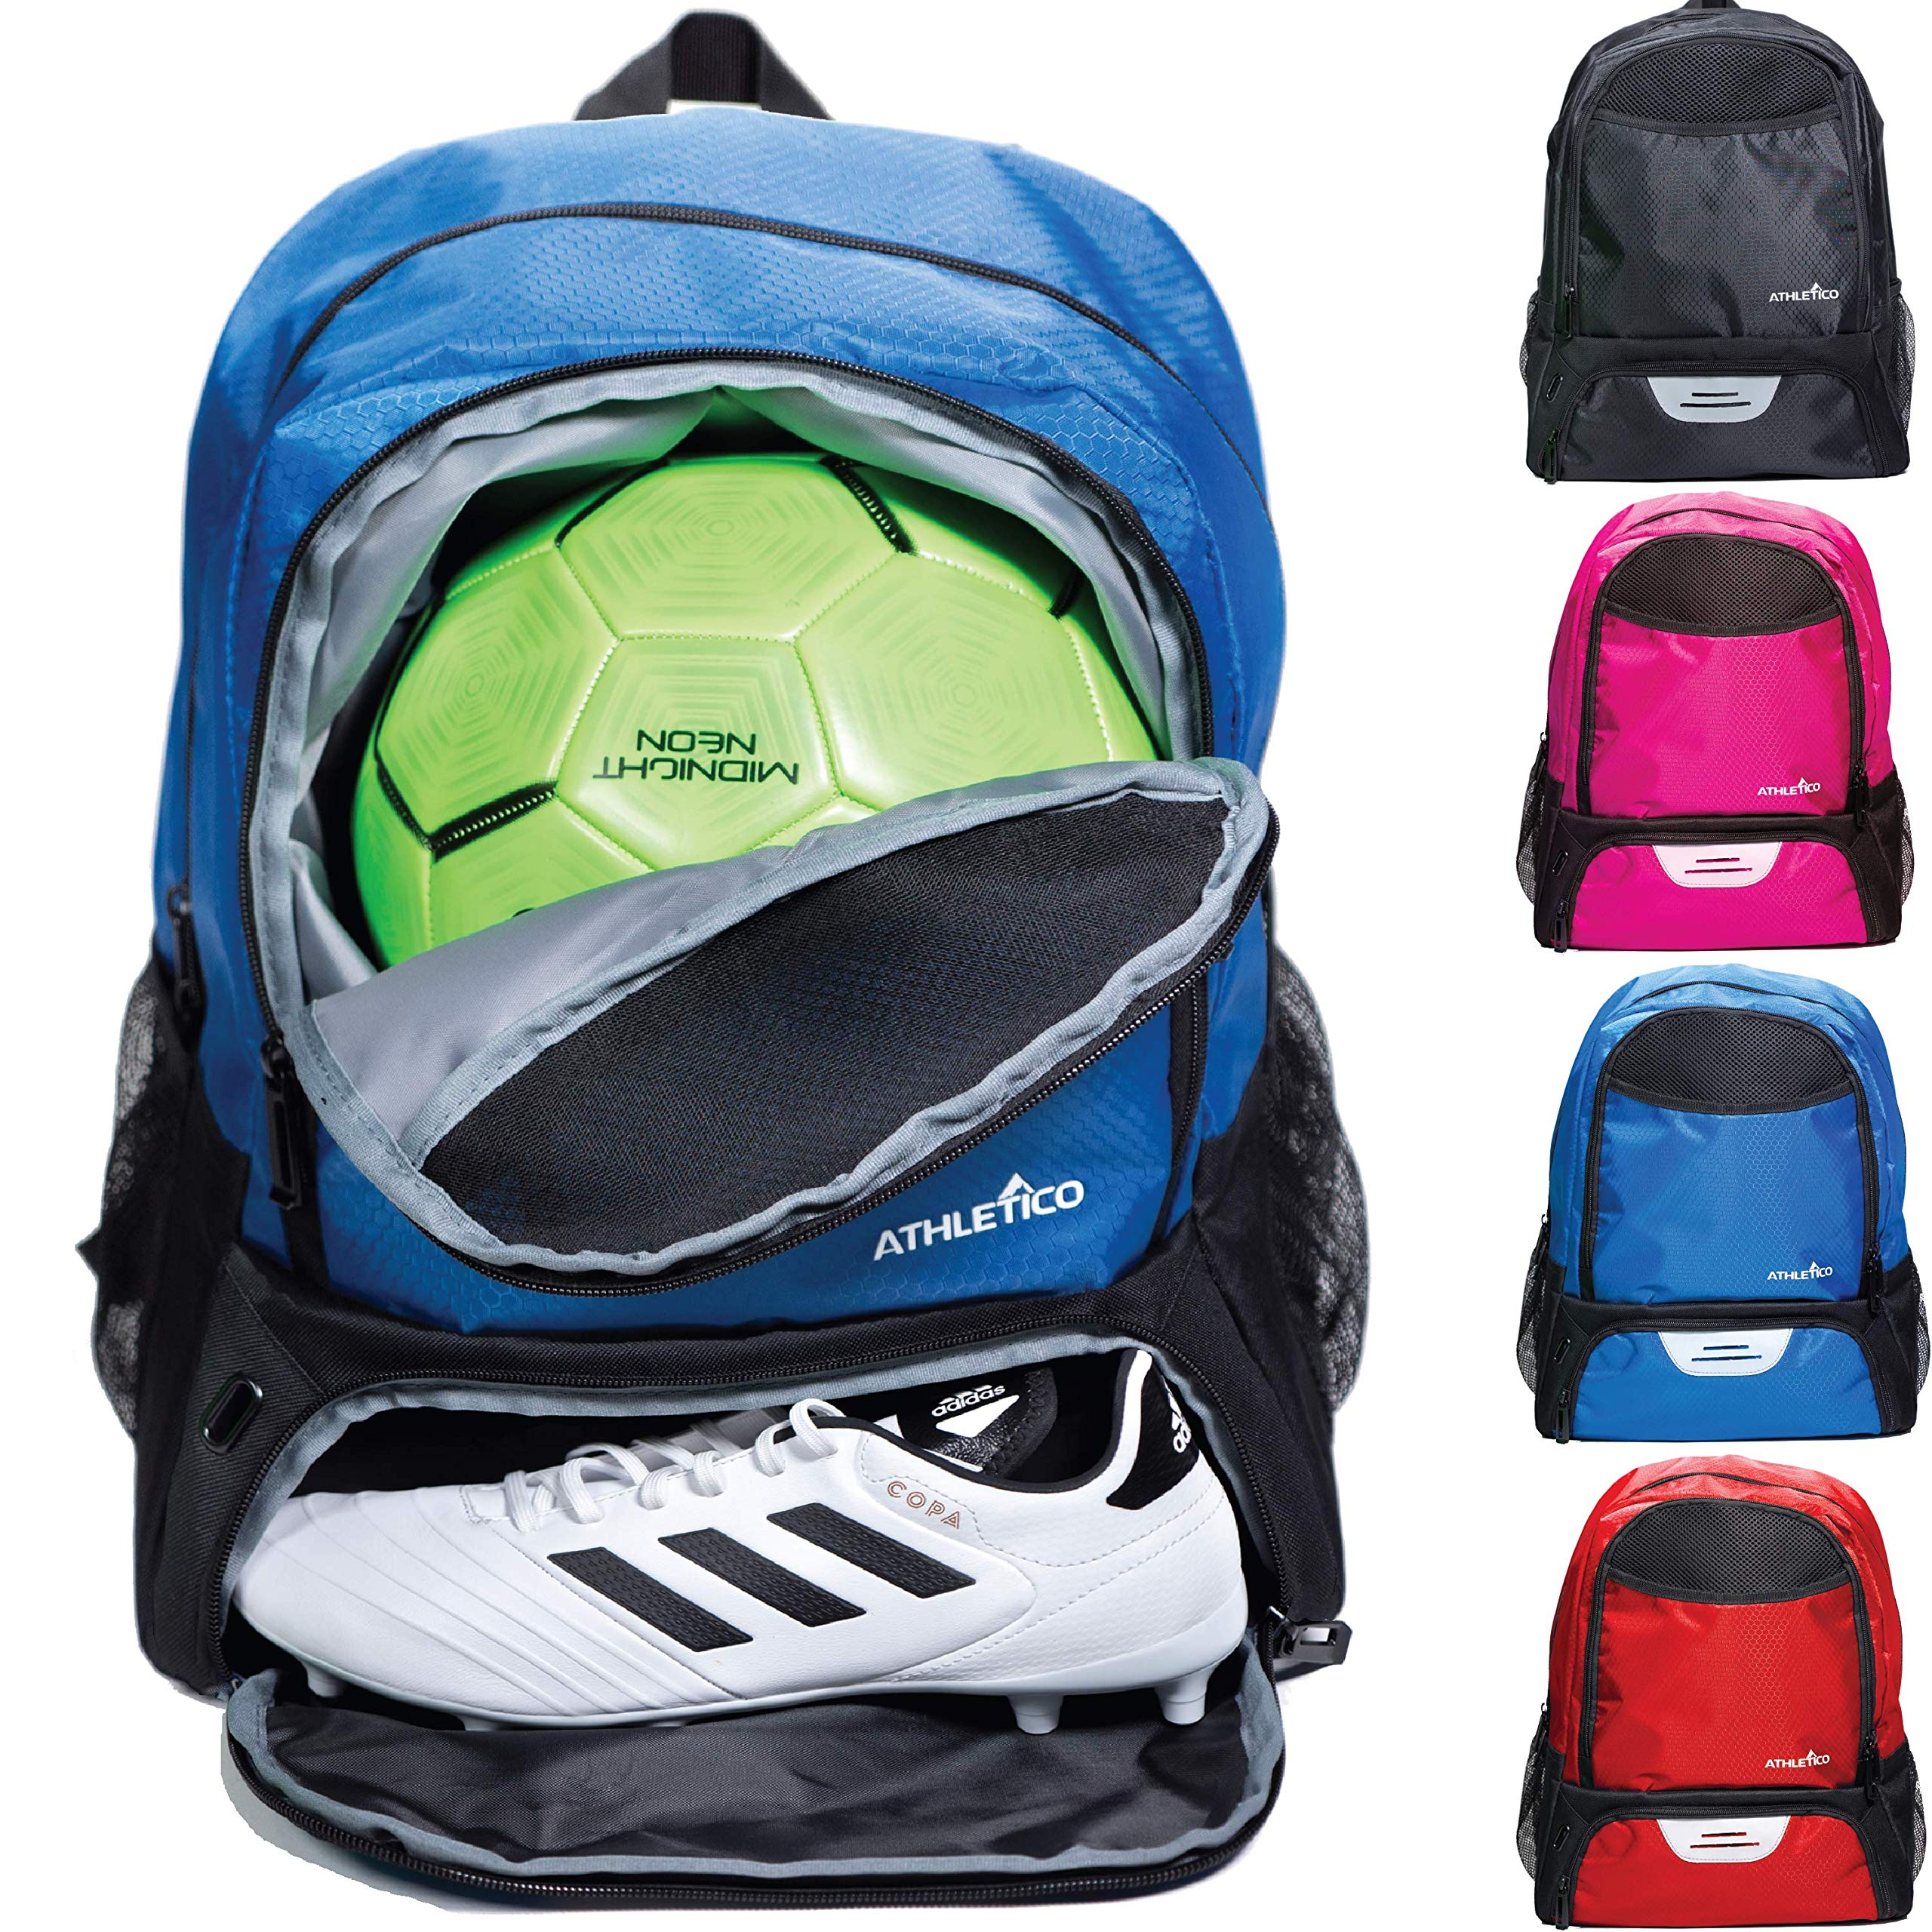 Athletico Youth Soccer Bag - Soccer Backpack & Bags for Basketball, Volleyball & Football   Includes Separate Cleat and Ball Compartments (Blue) by Athletico